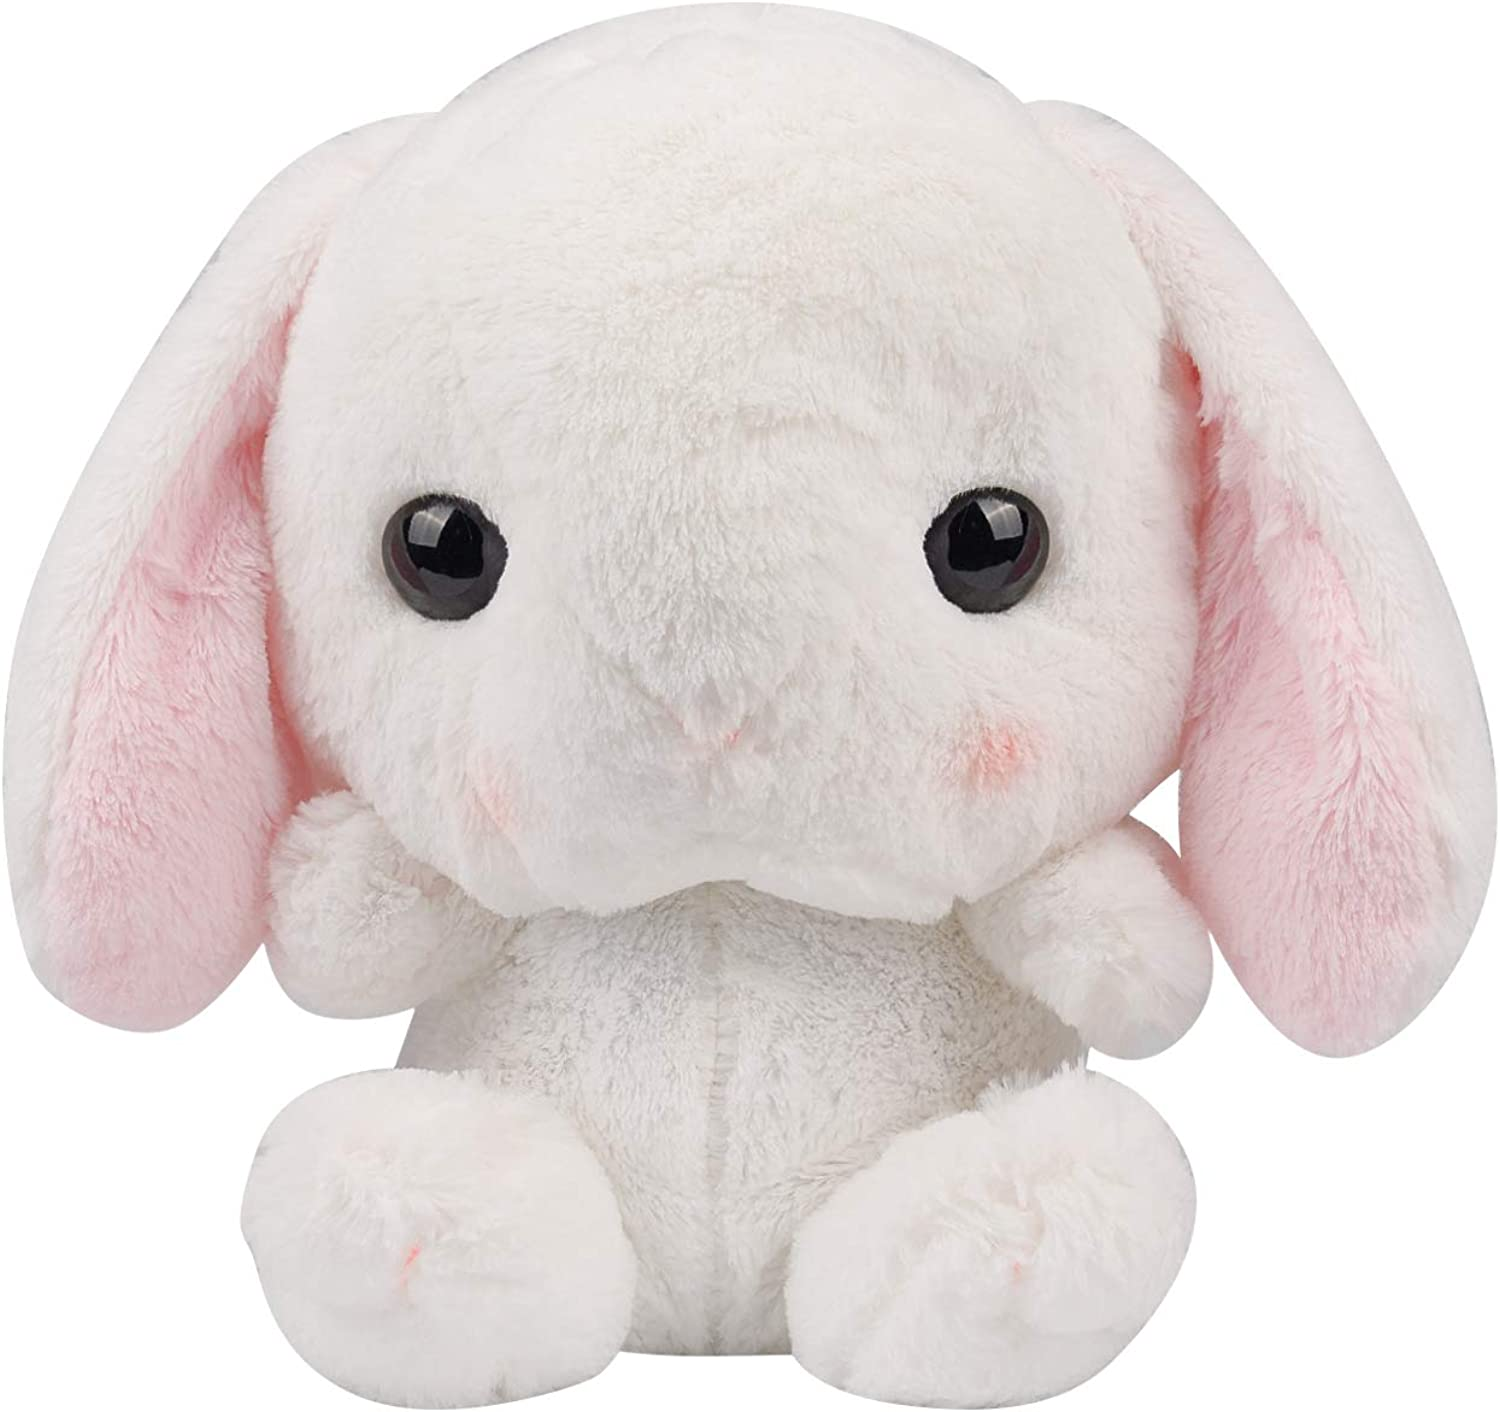 Rabbit Backpack Large Stuffed Lop Rabbit Doll Backpack,Best Gift 22Inches